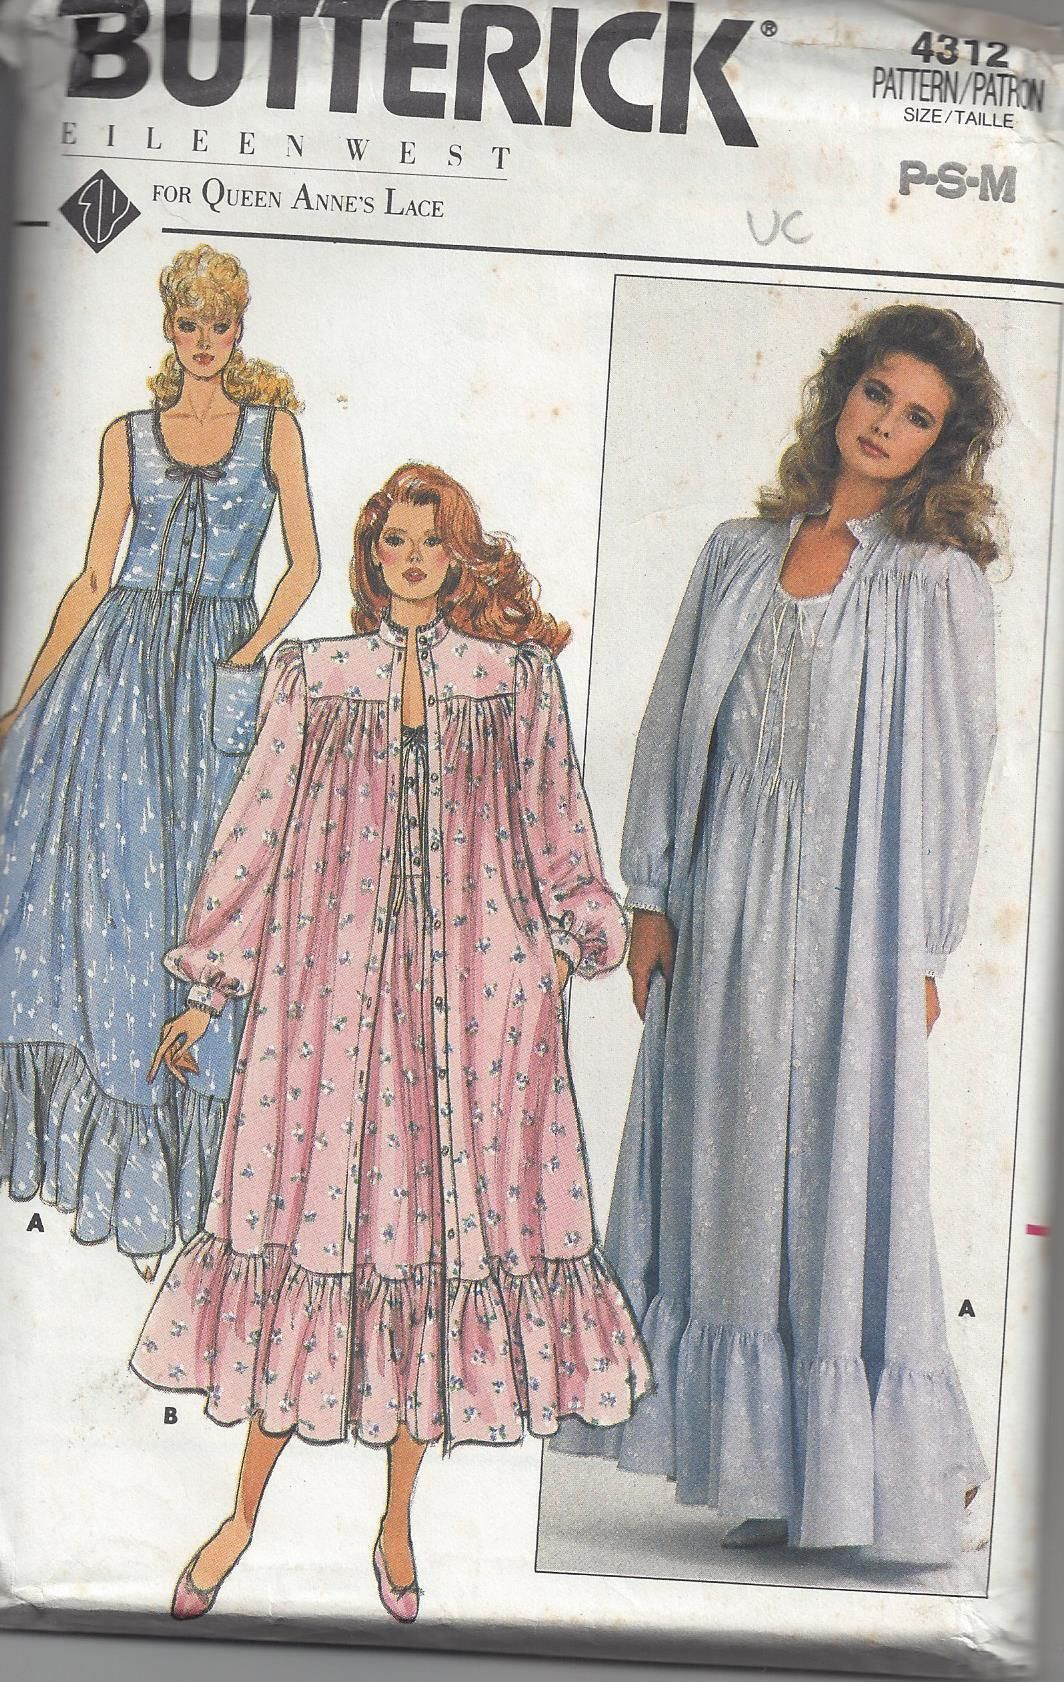 0ff8445780 MOMSPatterns Vintage Sewing Patterns - Butterick 4312 Vintage 80 s Sewing  Pattern ROMANTIC Eileen West for Queen Anne s Lace Victorian Style Modest  Scoop ...